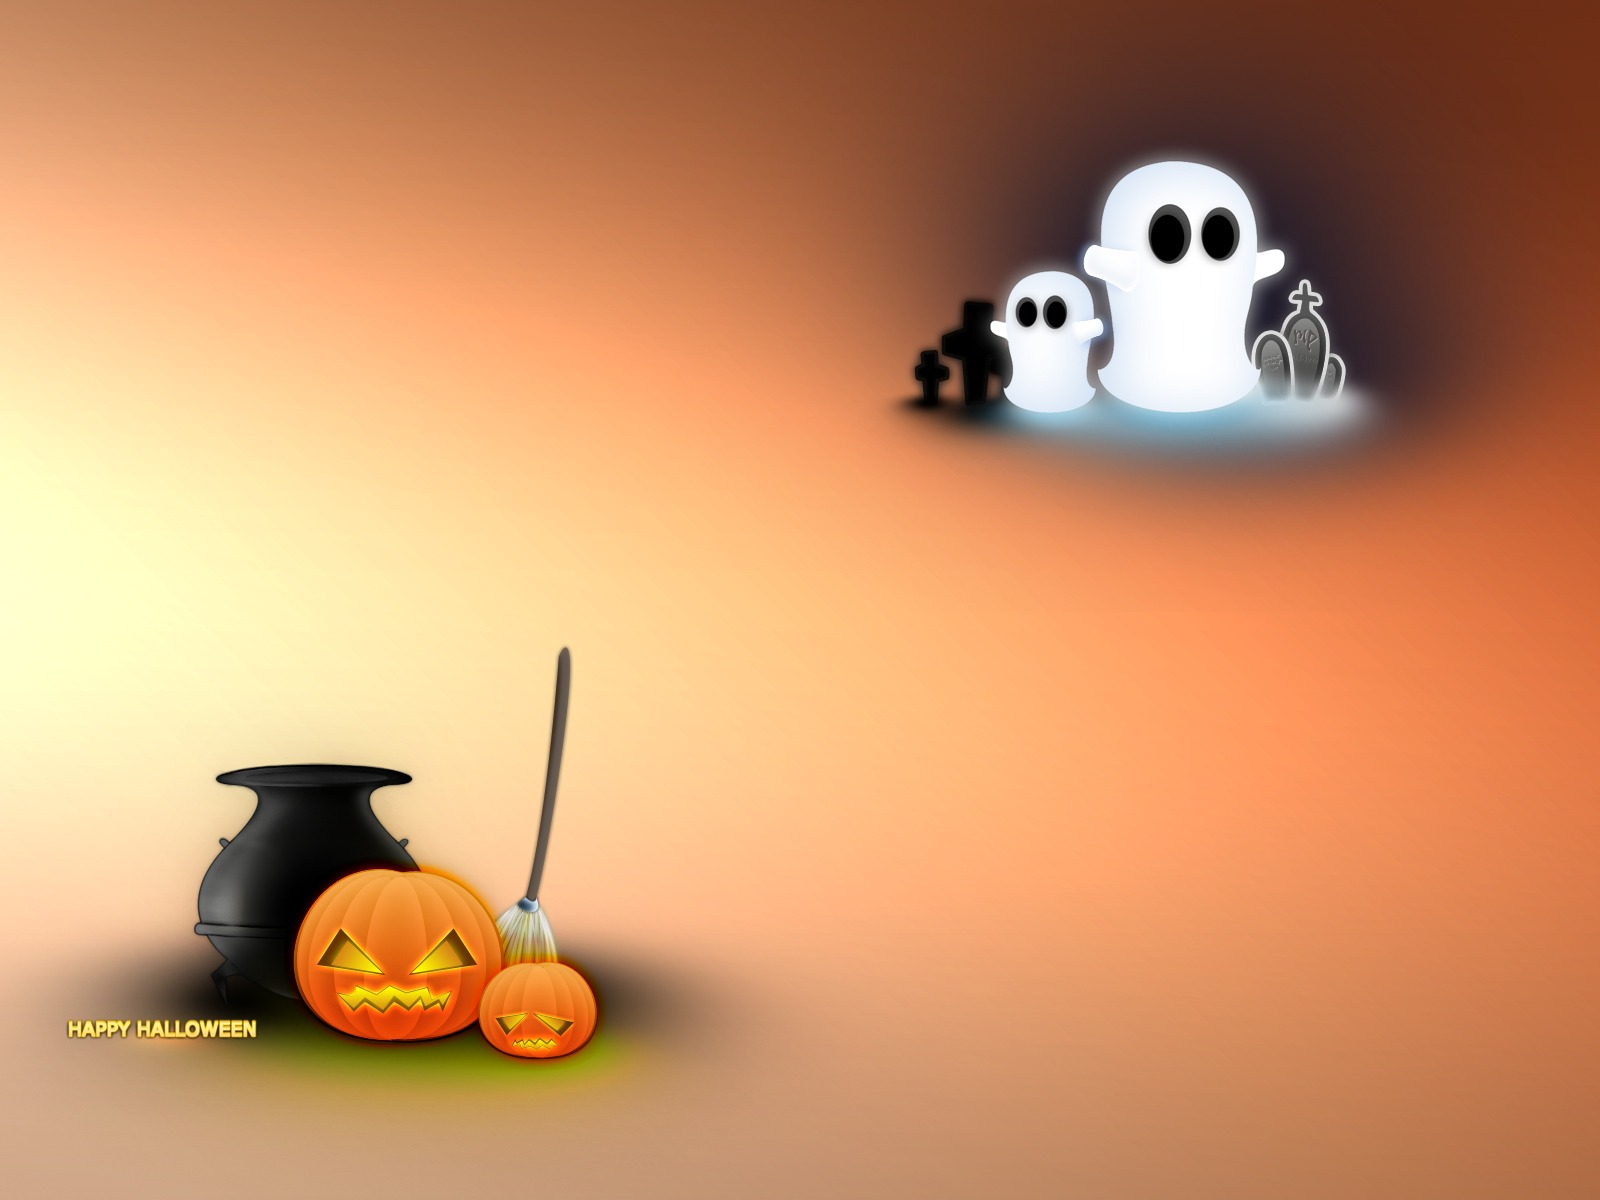 Halloween Pictures Wallpaper Funny Childish Backgrounds